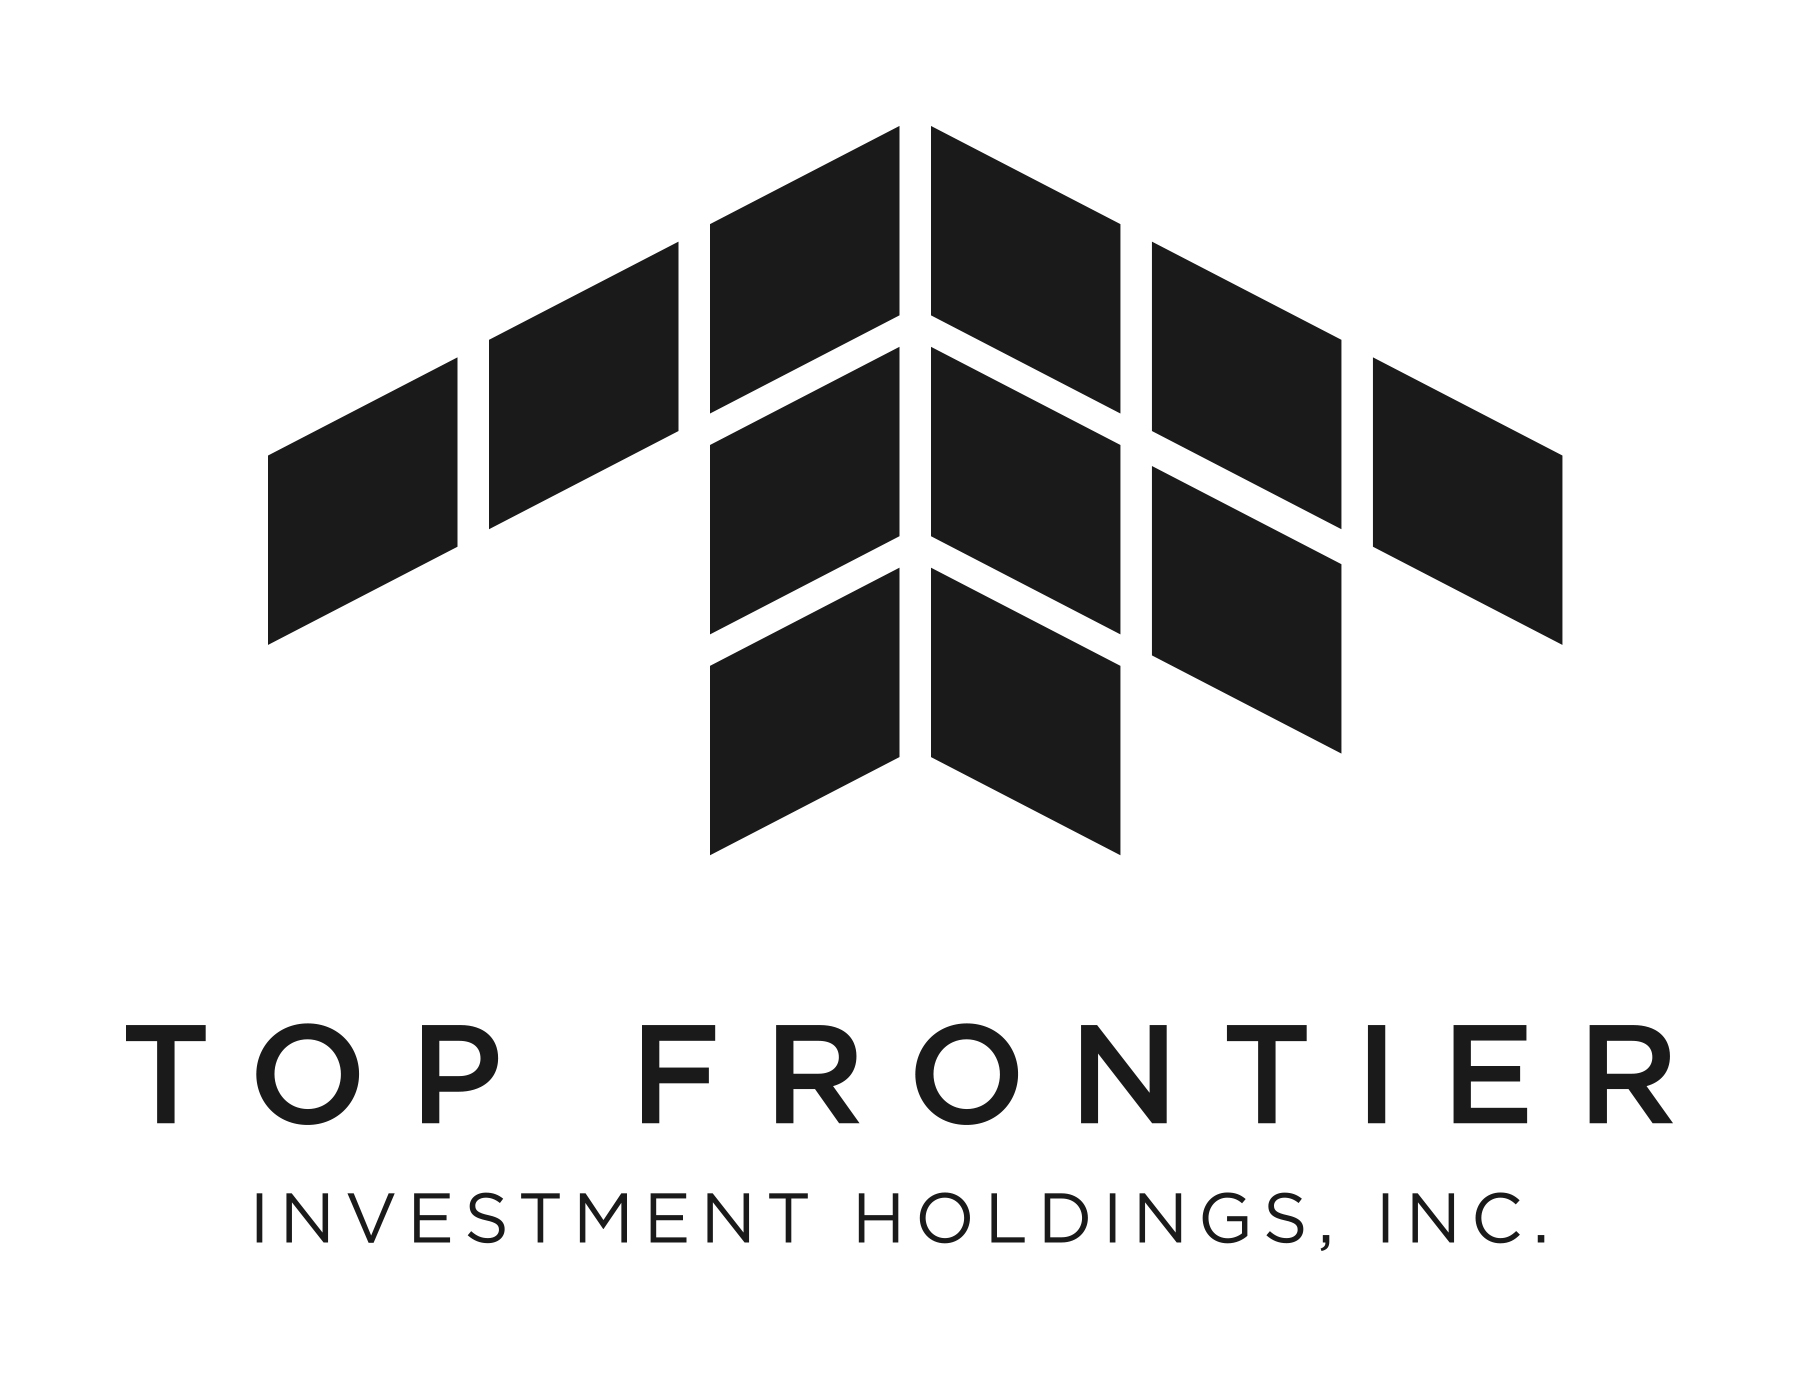 Top Frontier Investment Holdings Logo